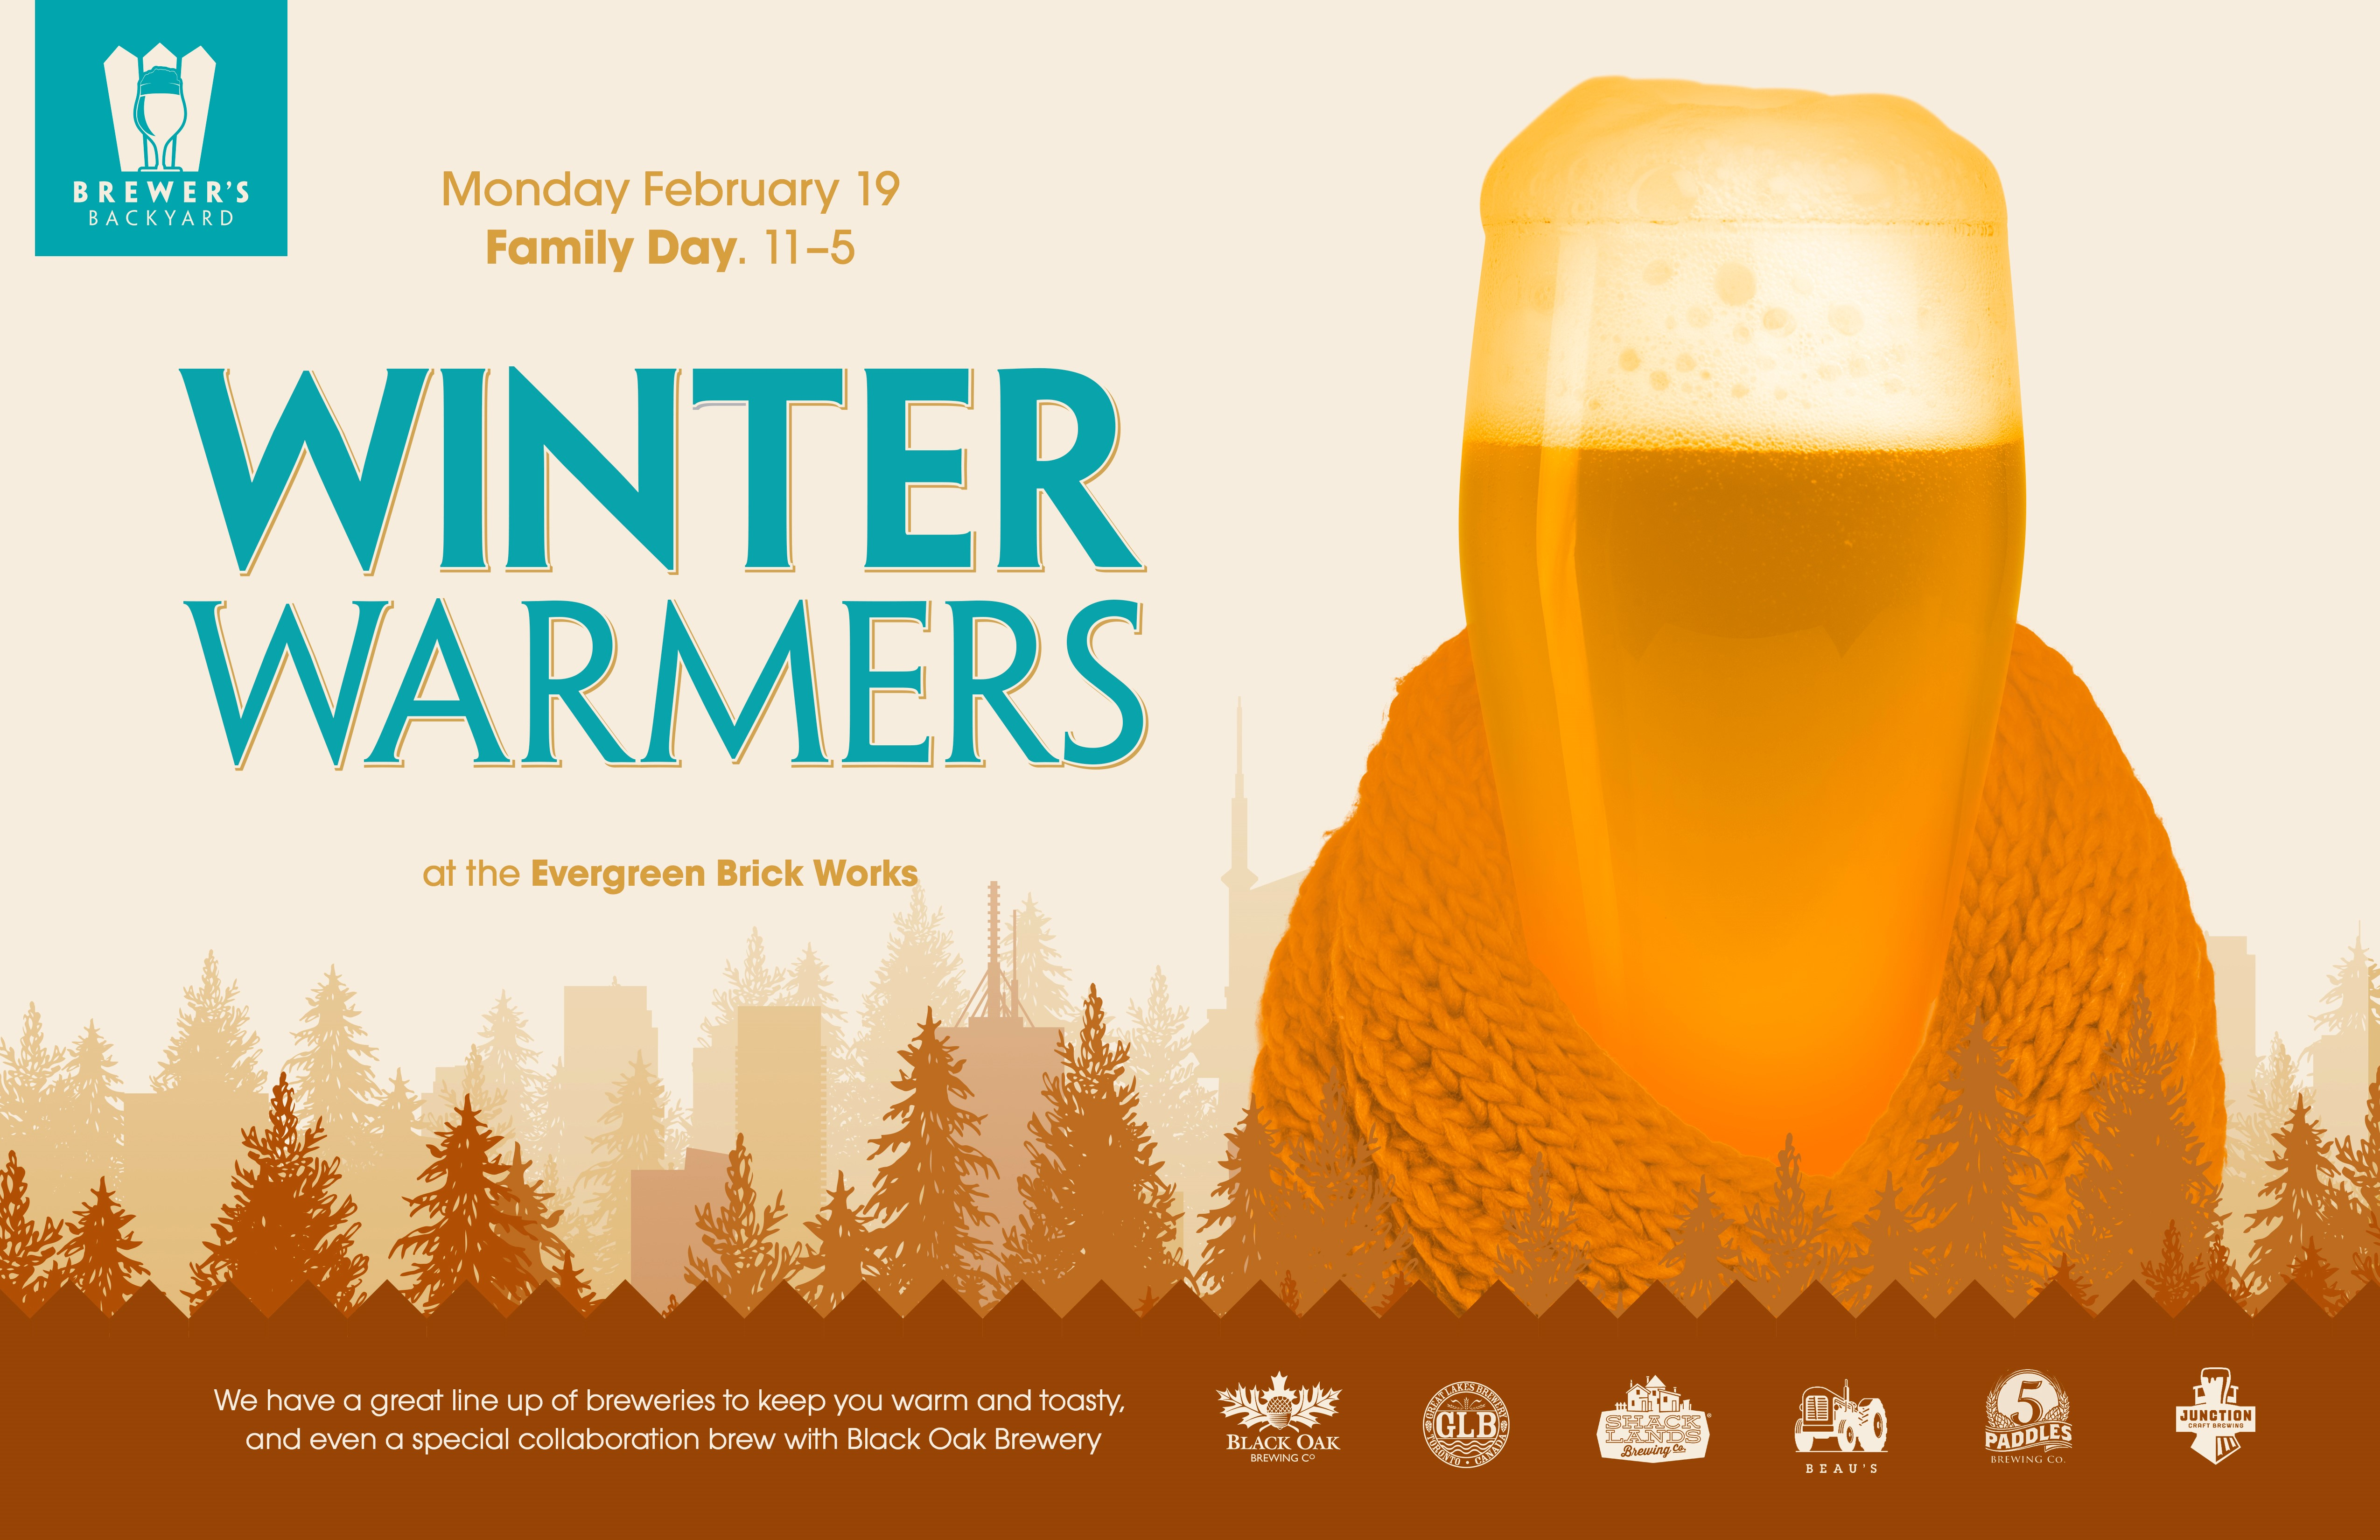 Brewer's Backyard, Monday February 19. Family Day, 11am-5pm. Winter Warmers at the Evergreen Brick Works.